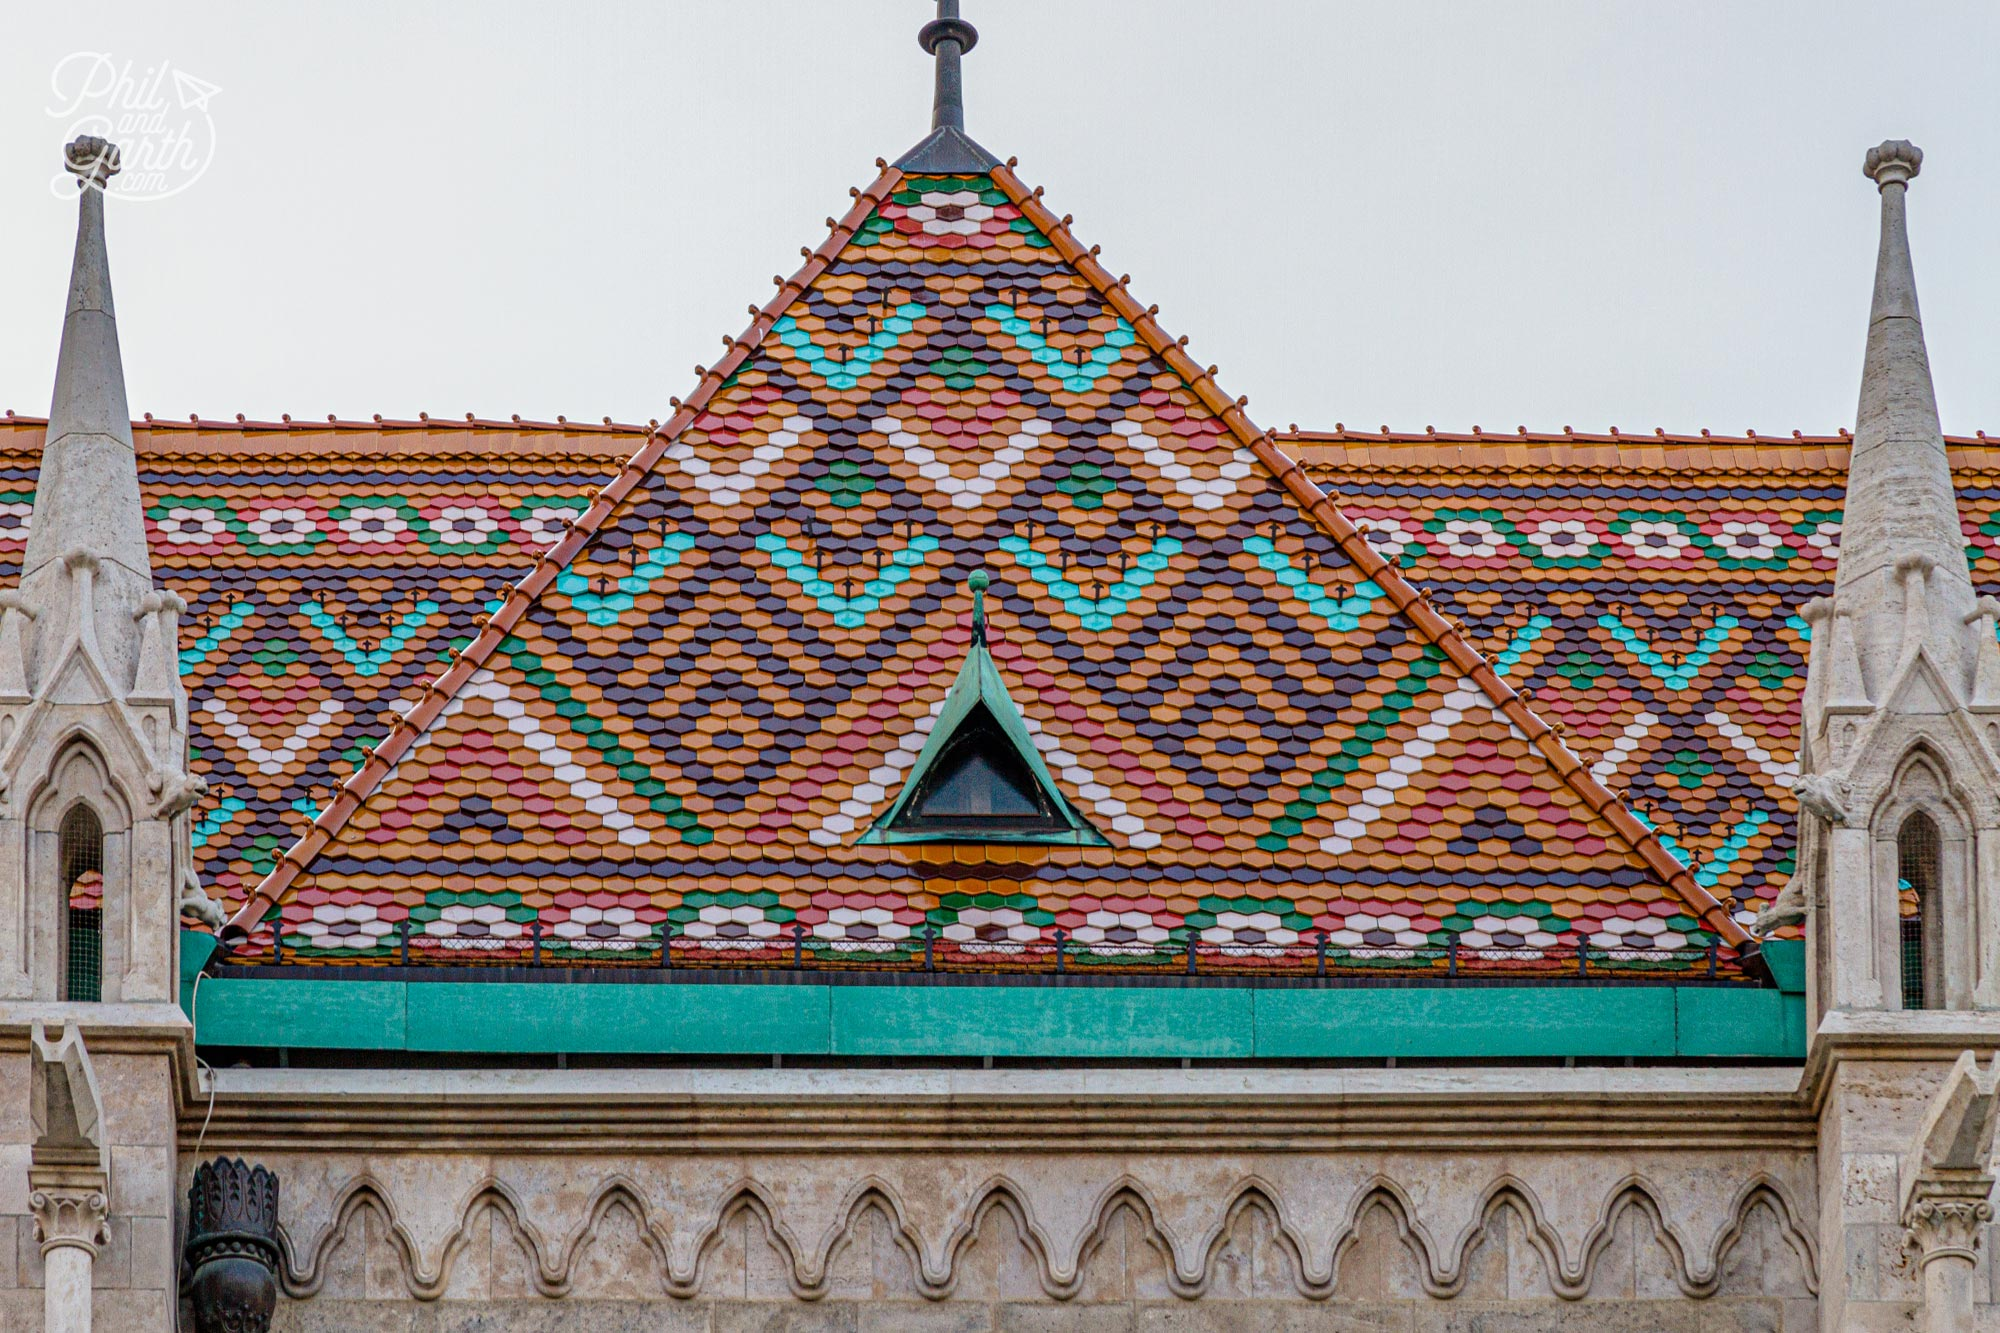 The colourful roof tiles in geometic designs are fabulous